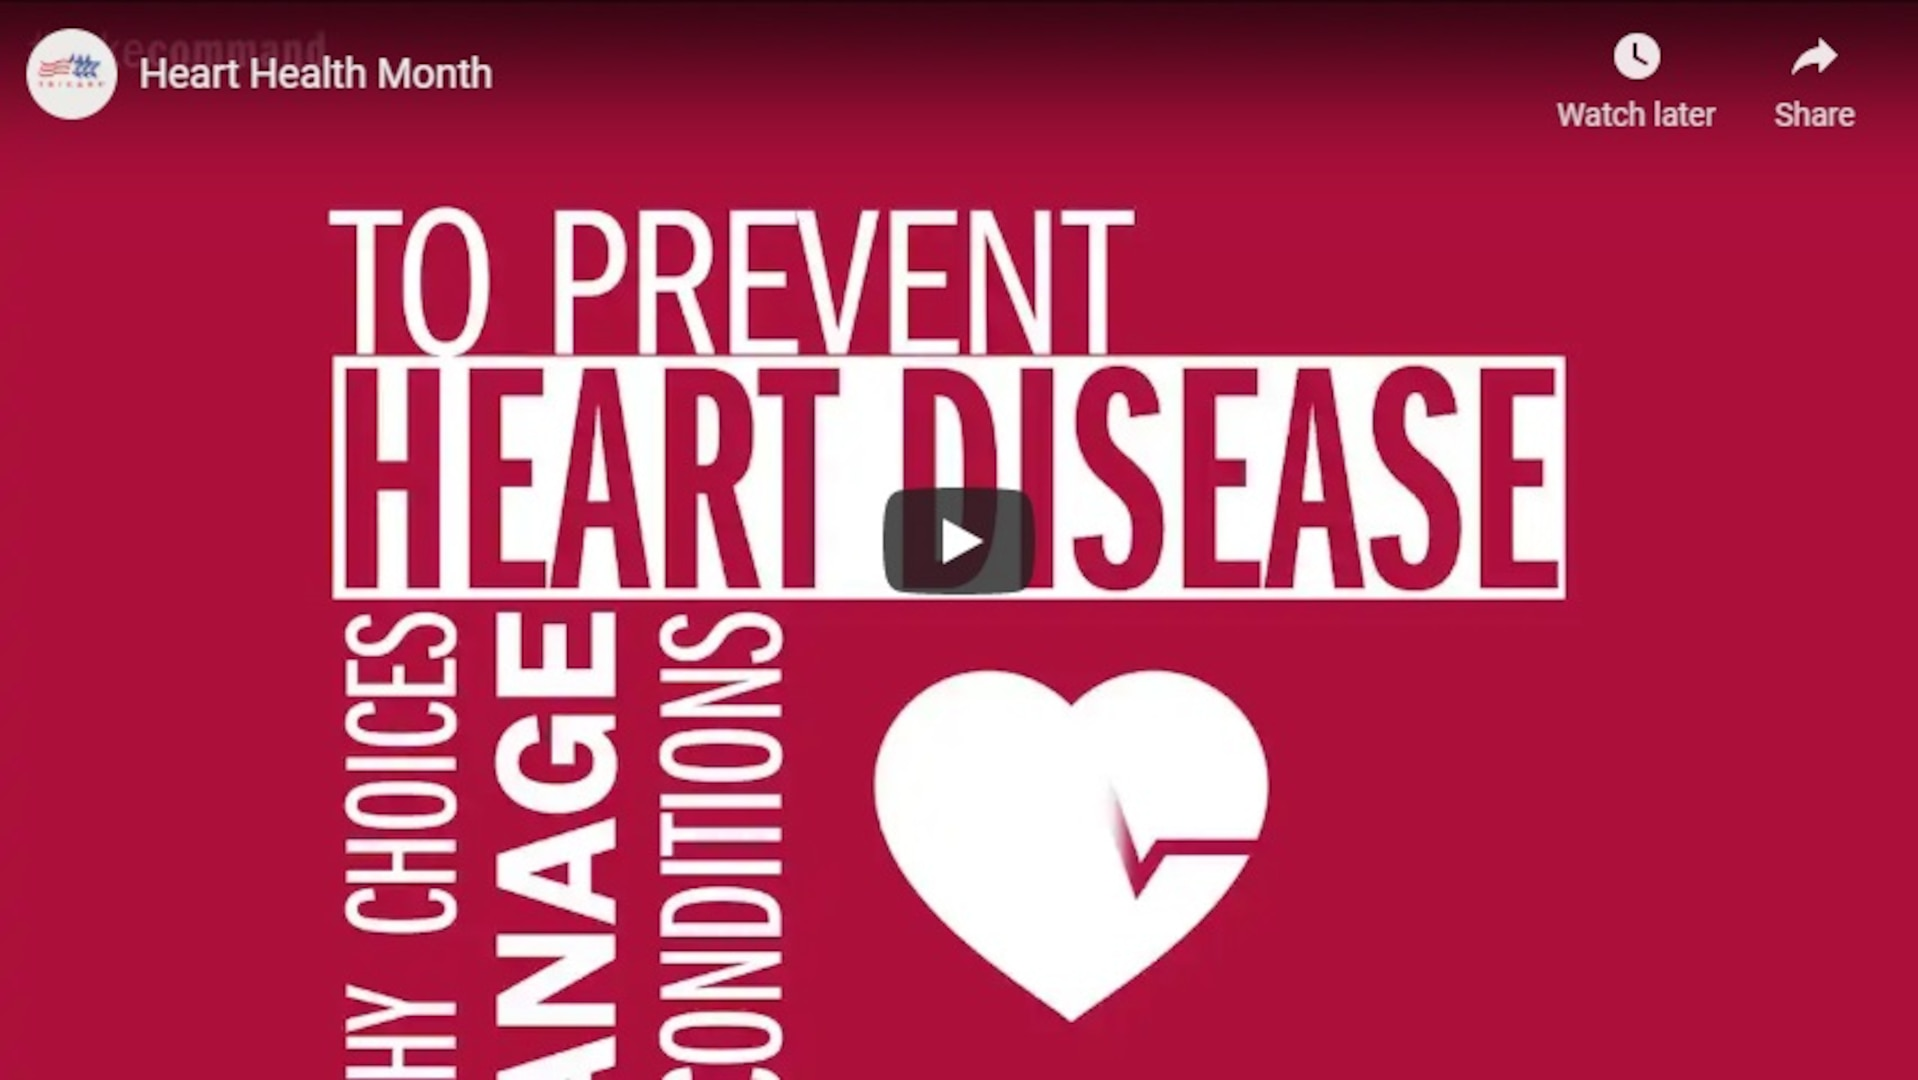 Stay heart healthy year round by following these tips.